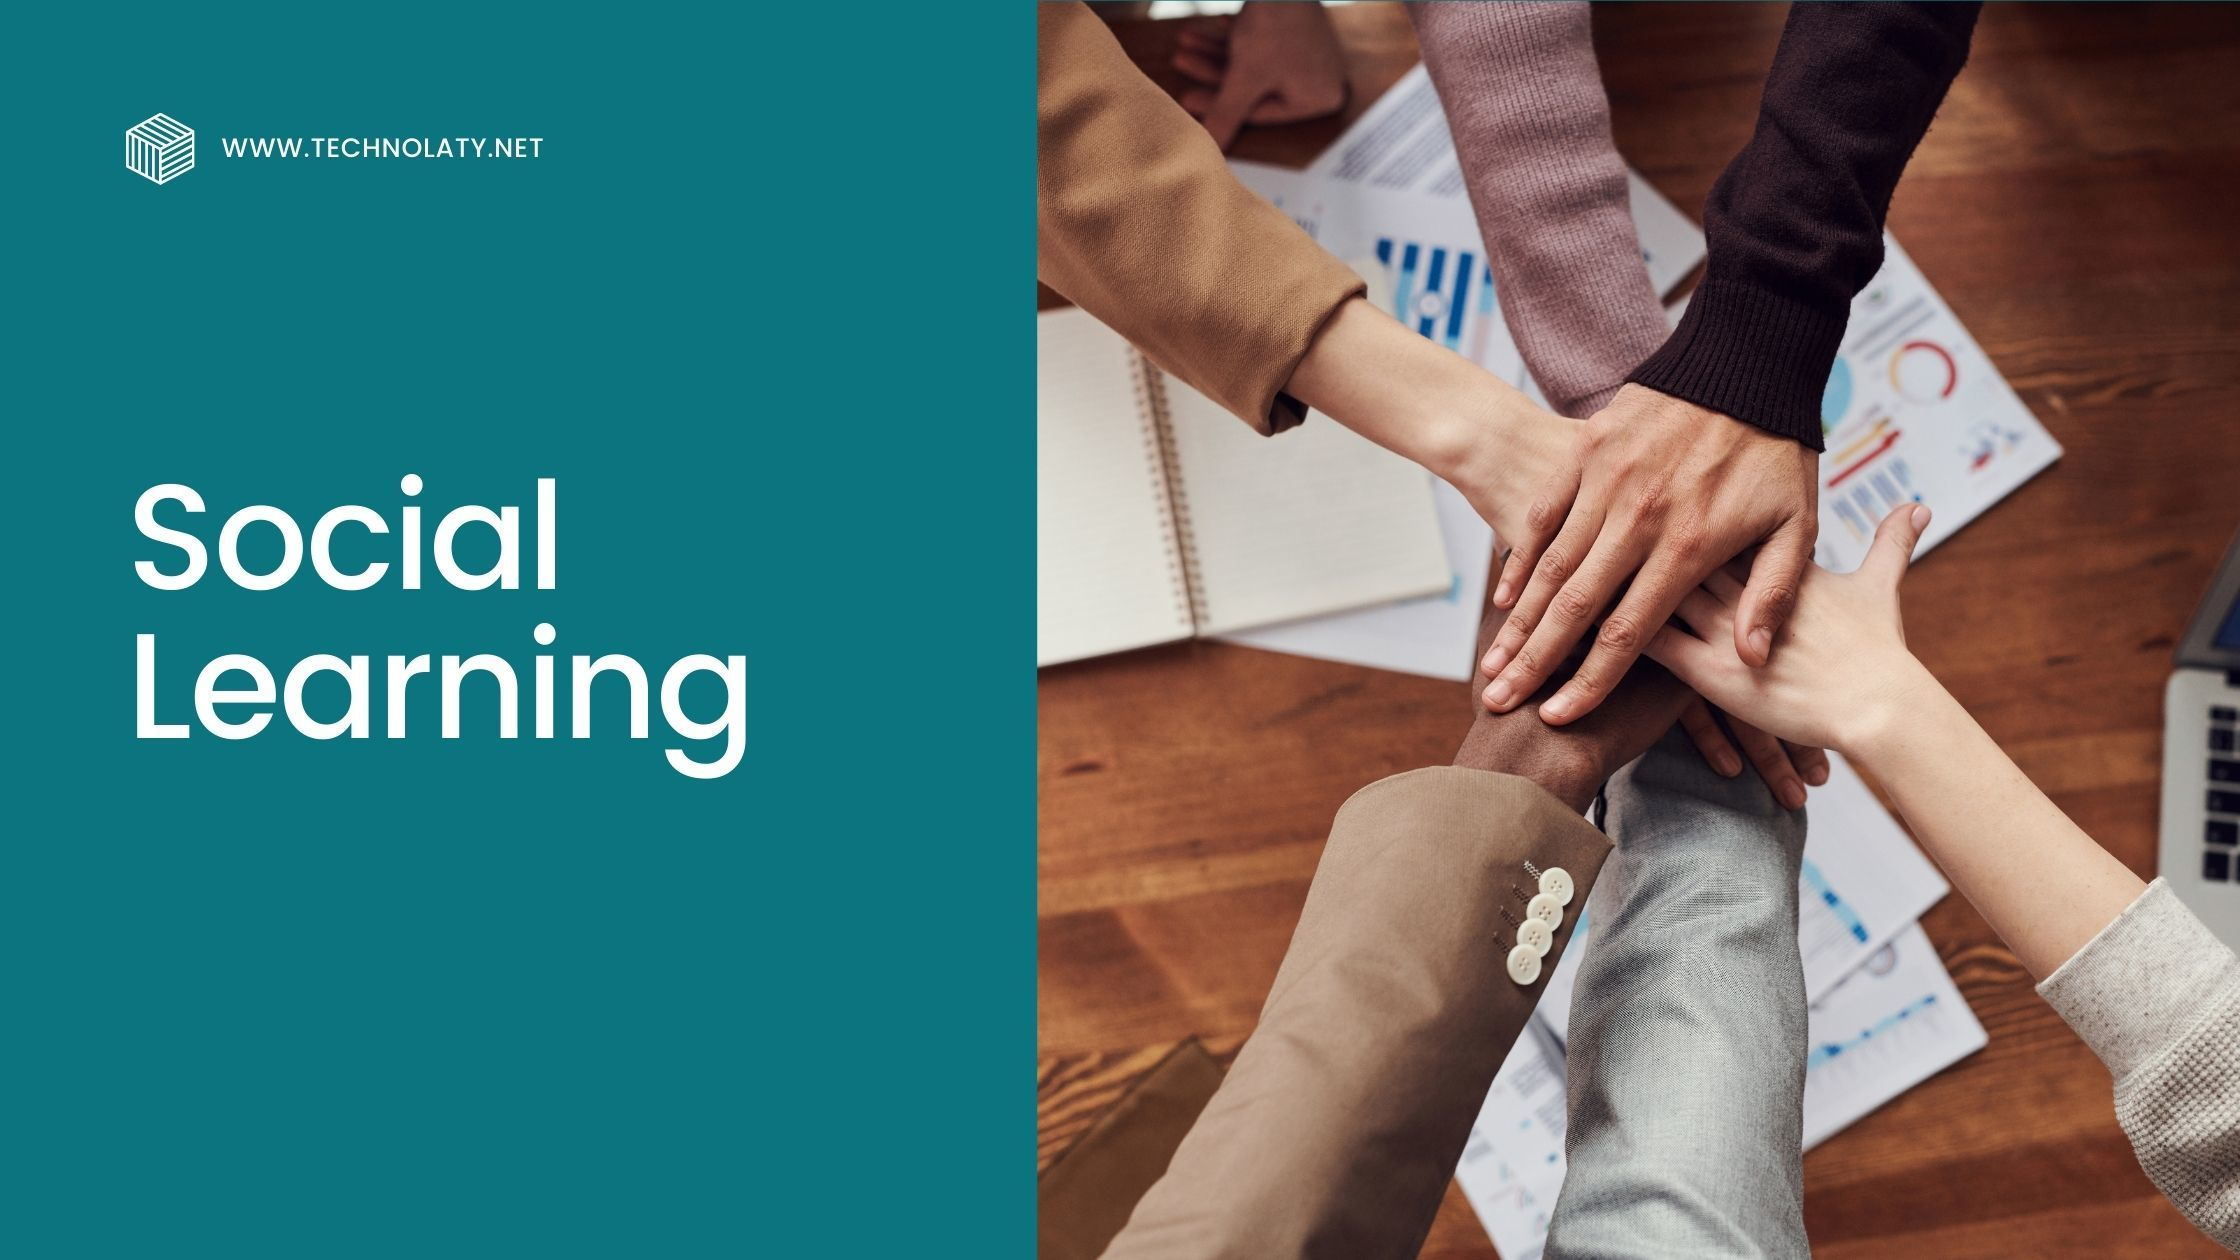 Social Learning in Workplace